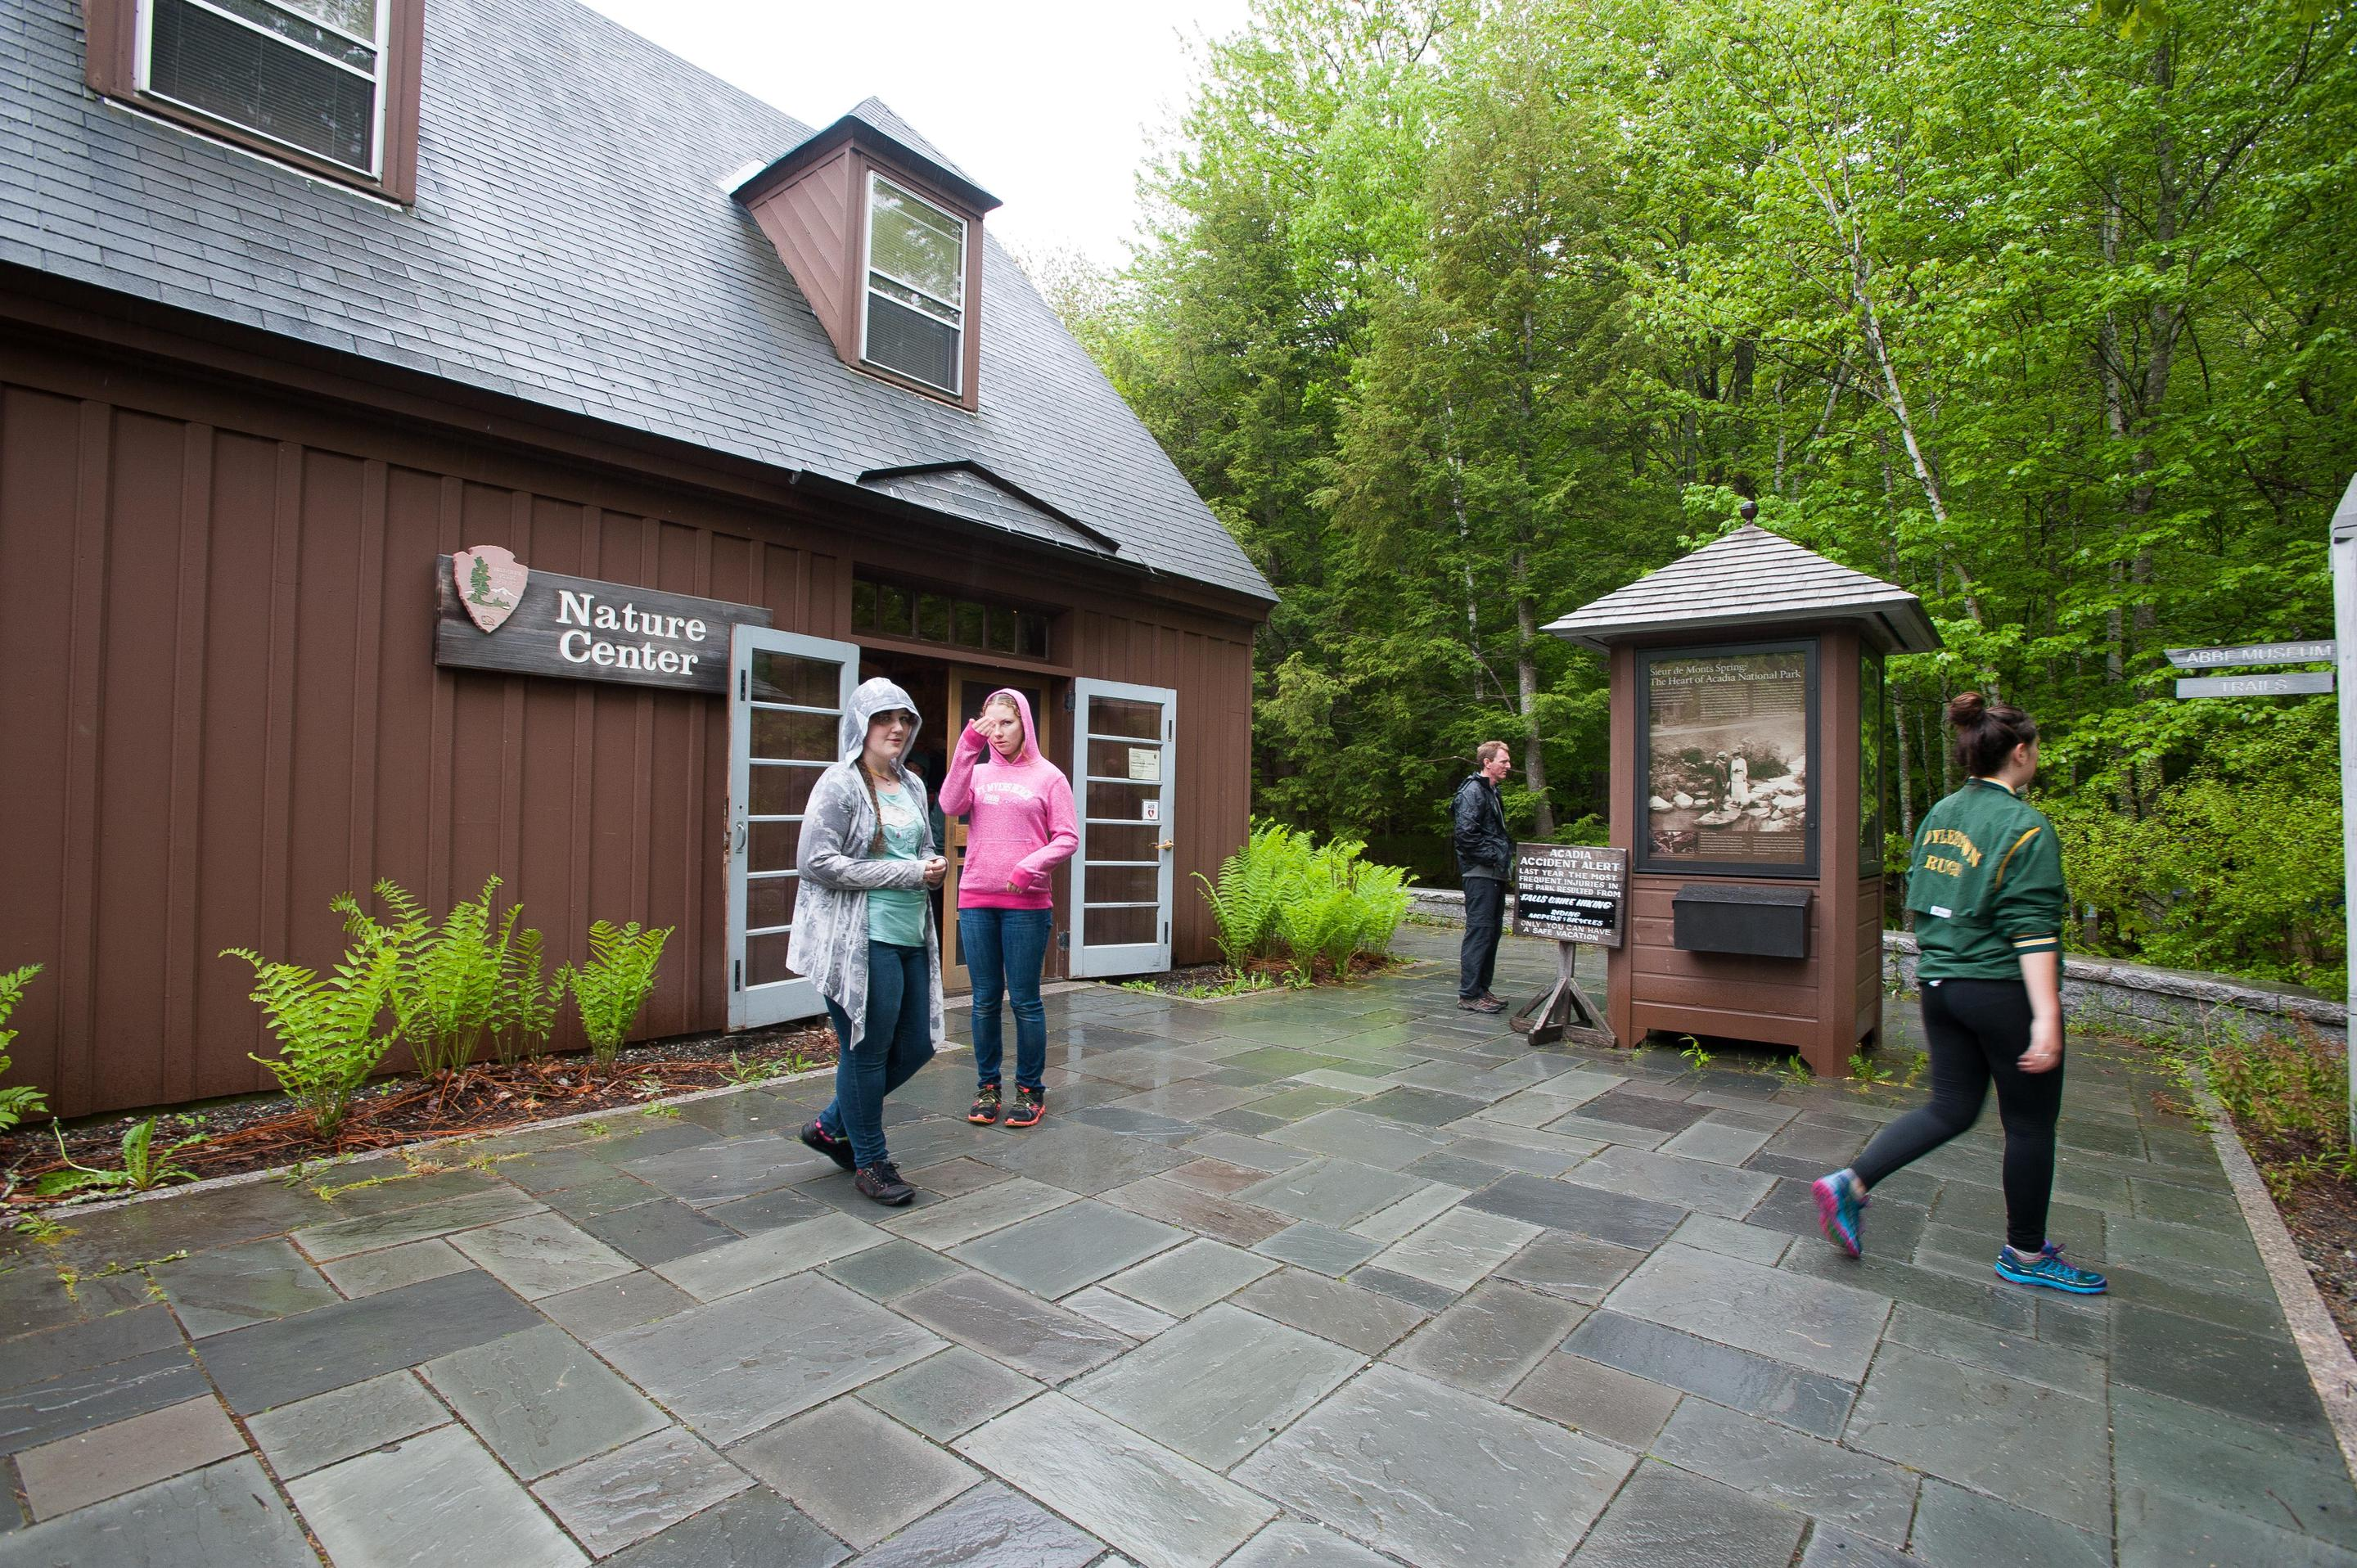 Sieur de Monts Nature CenterPark information is located inside and outside the Nature Center